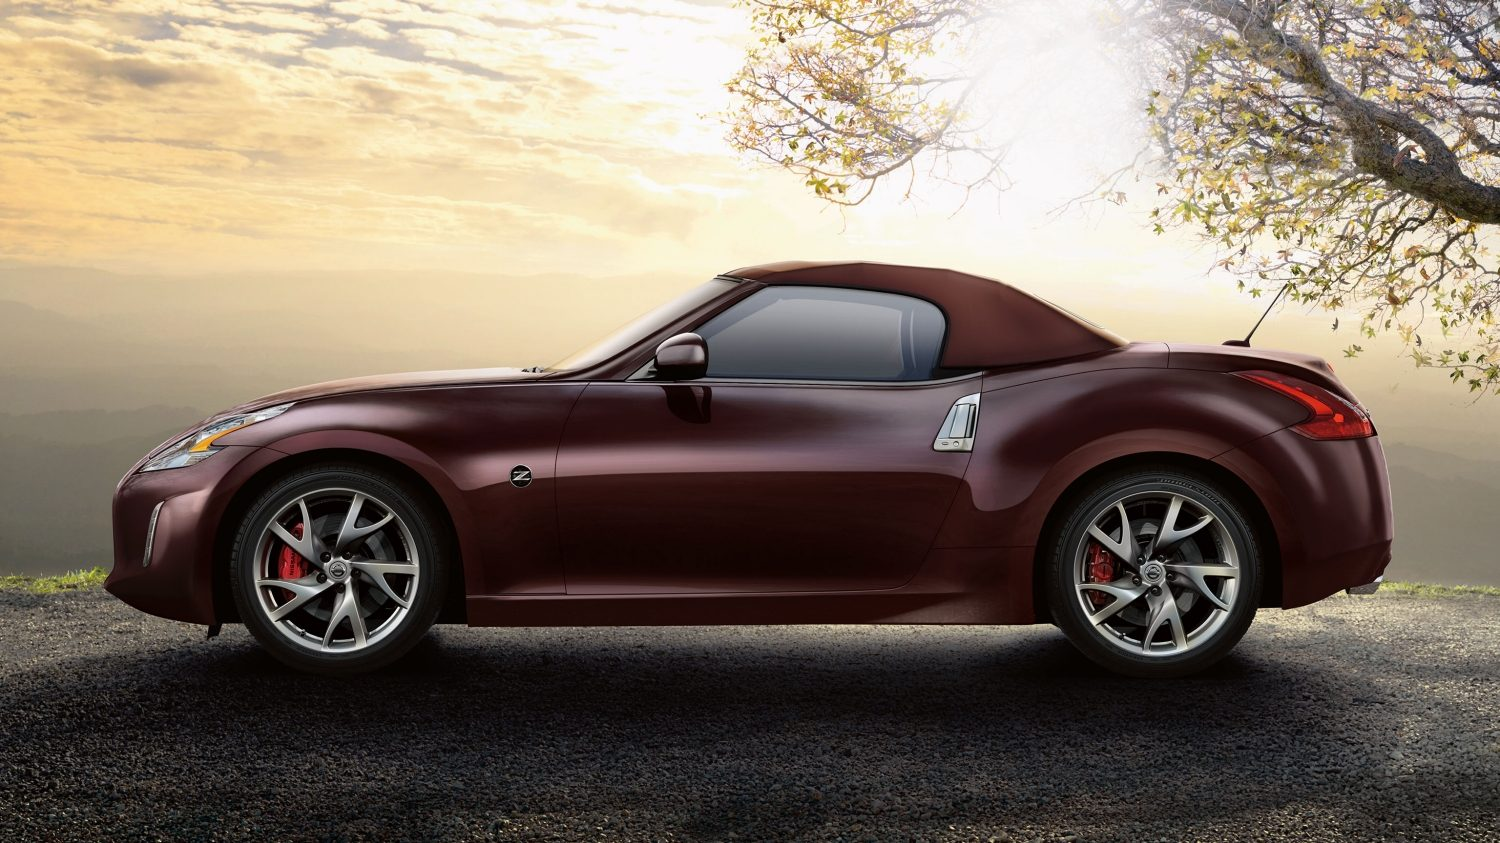 Nissan 370Z ROADSTER - Sunset red - Vista laterale con la capote alzata